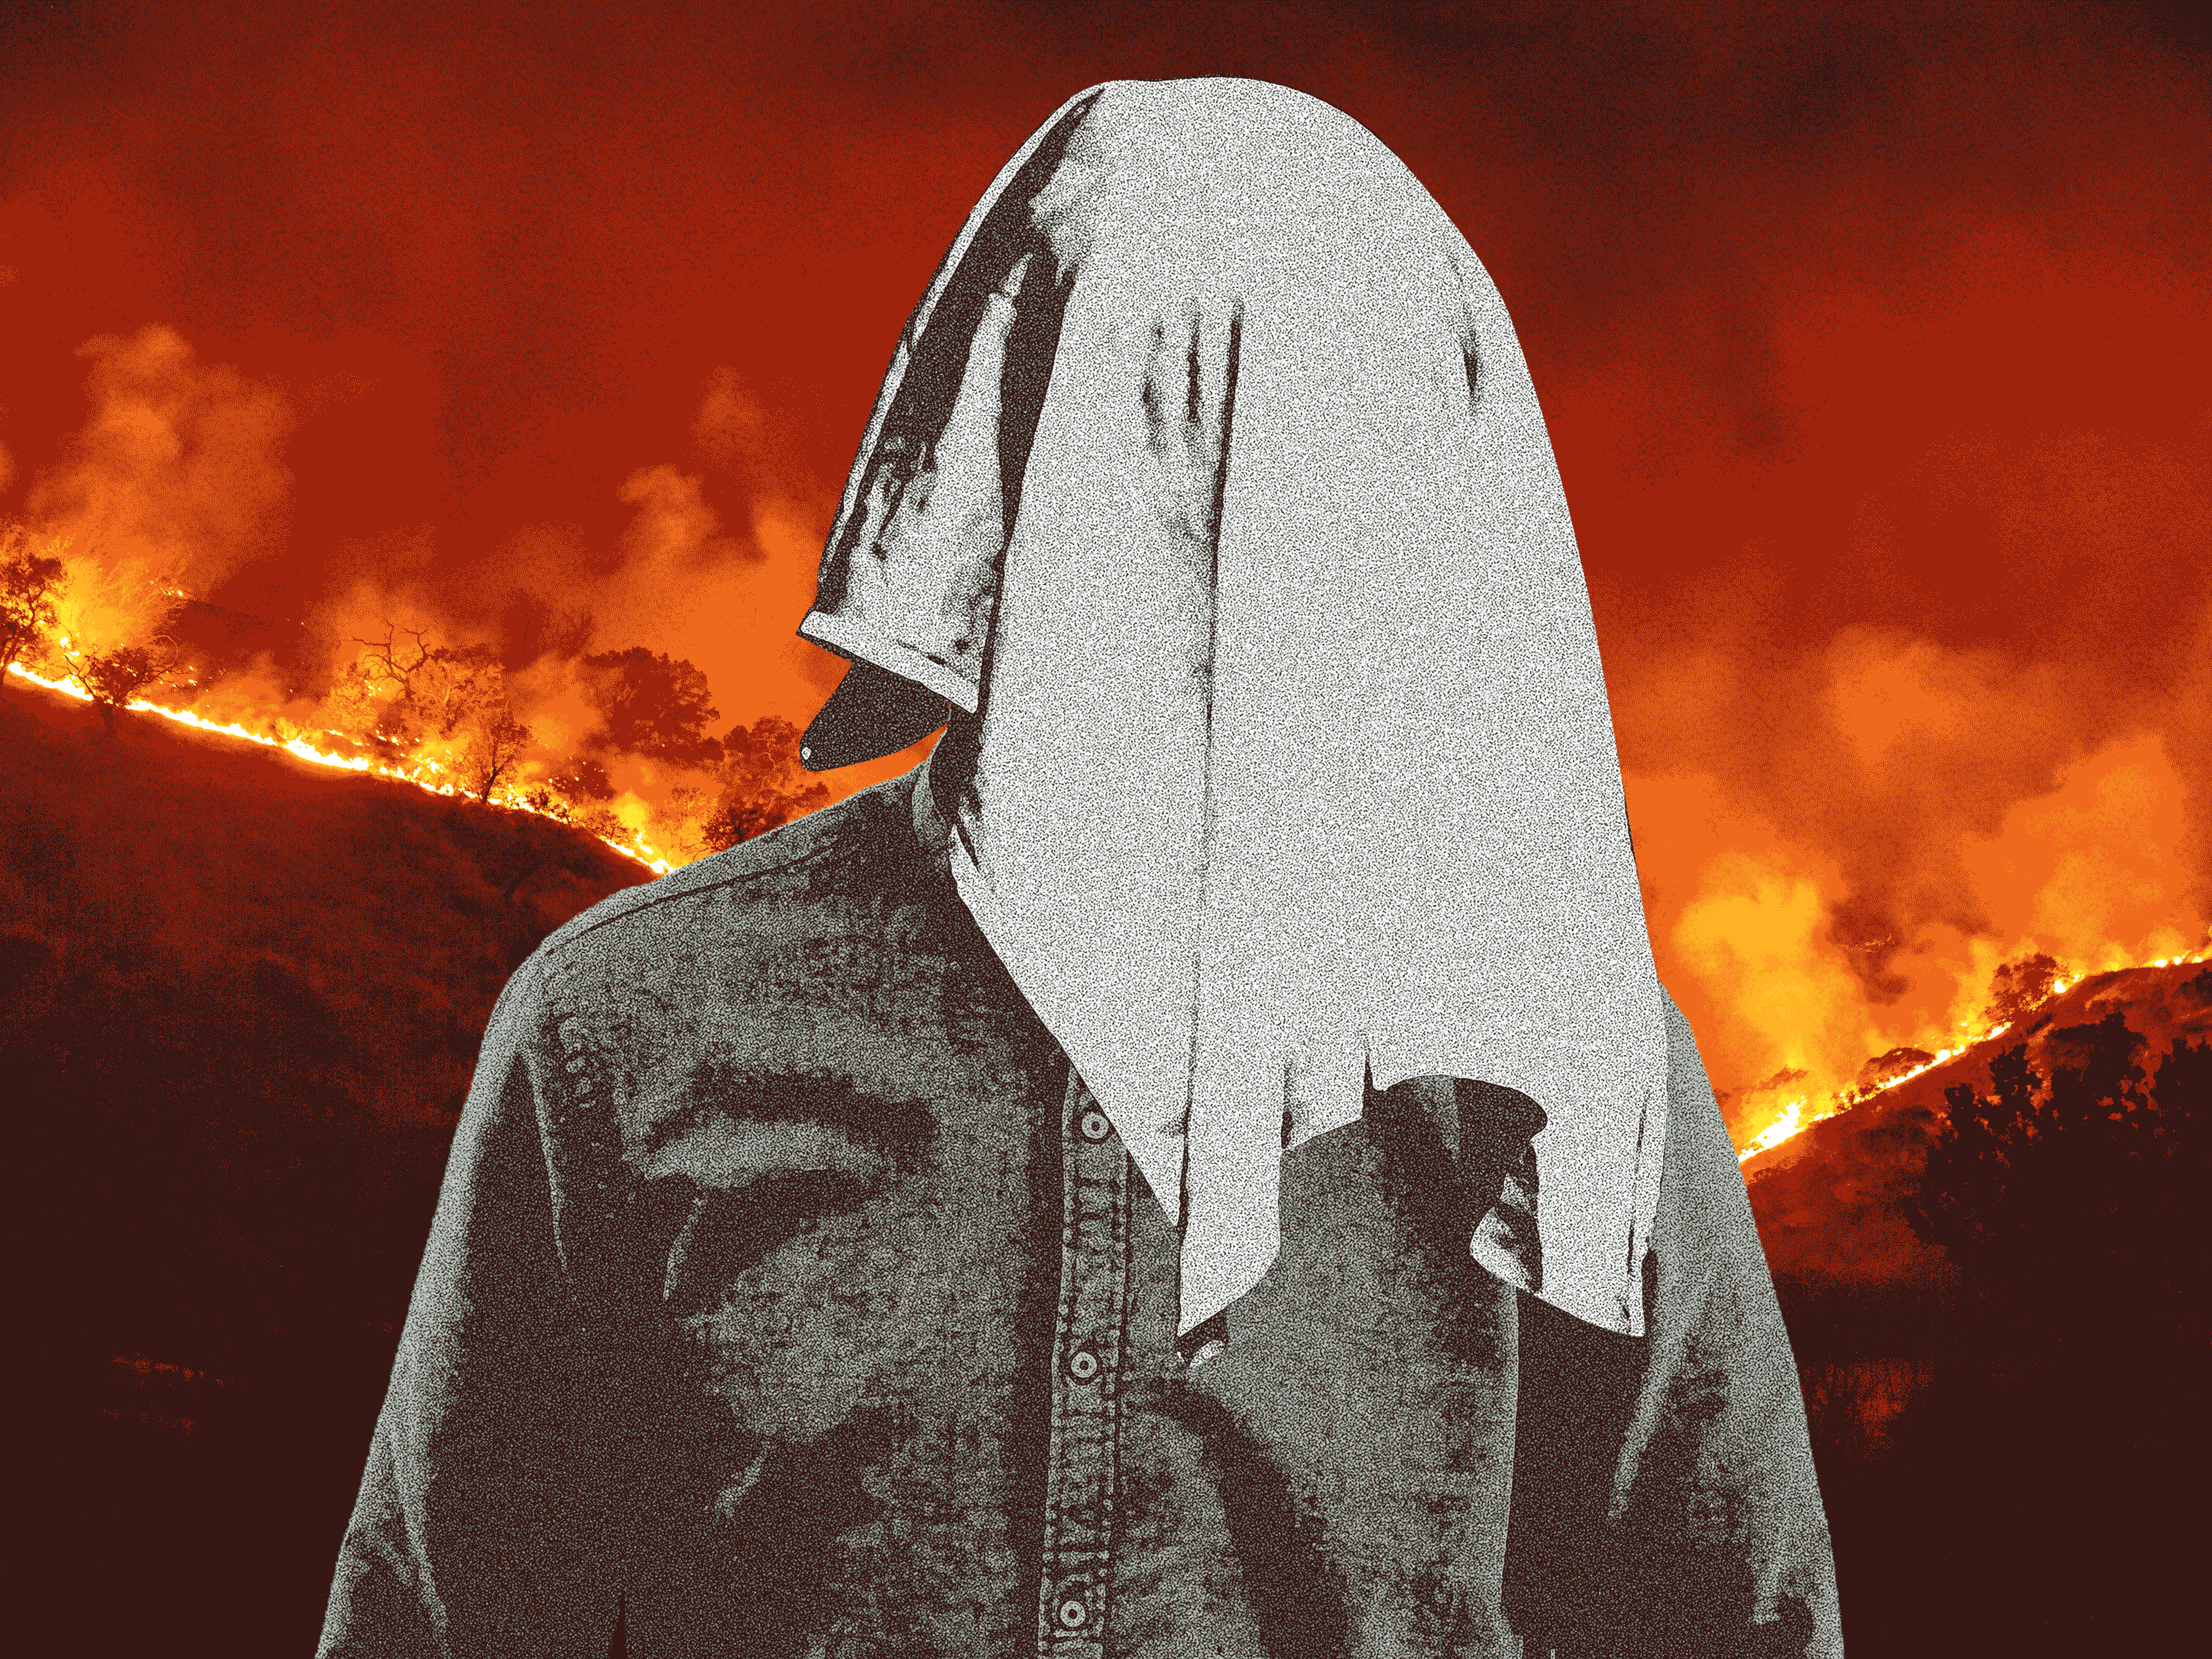 Illustration of a person with a towel over their head in front of a background of burning forest